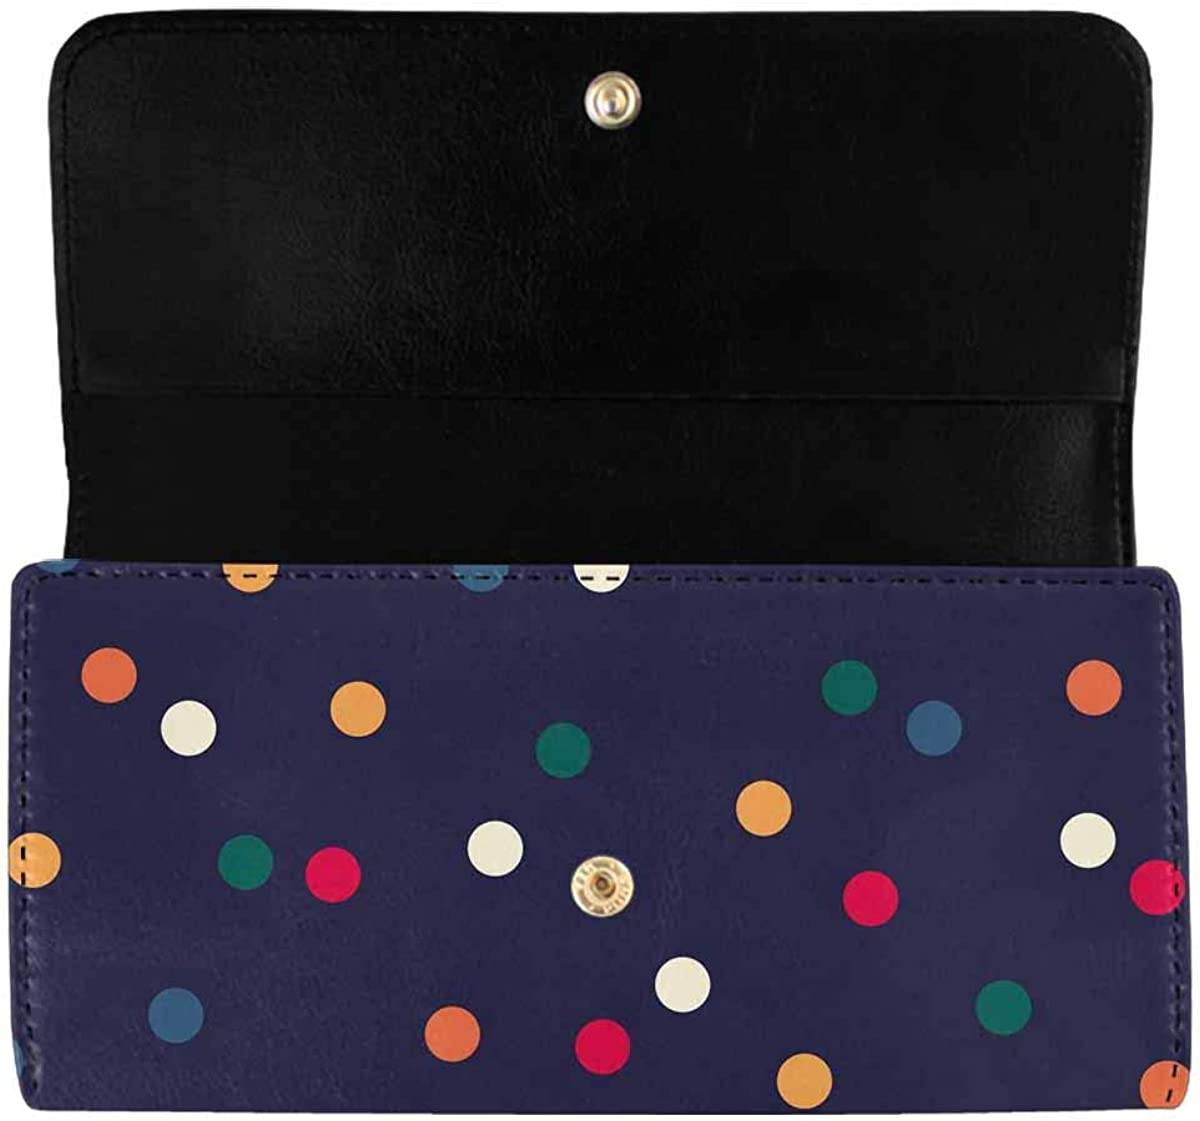 INTERESTPRINT Women's Long Clutch Purses Colorful Circles Trifold Card Holder Wallet